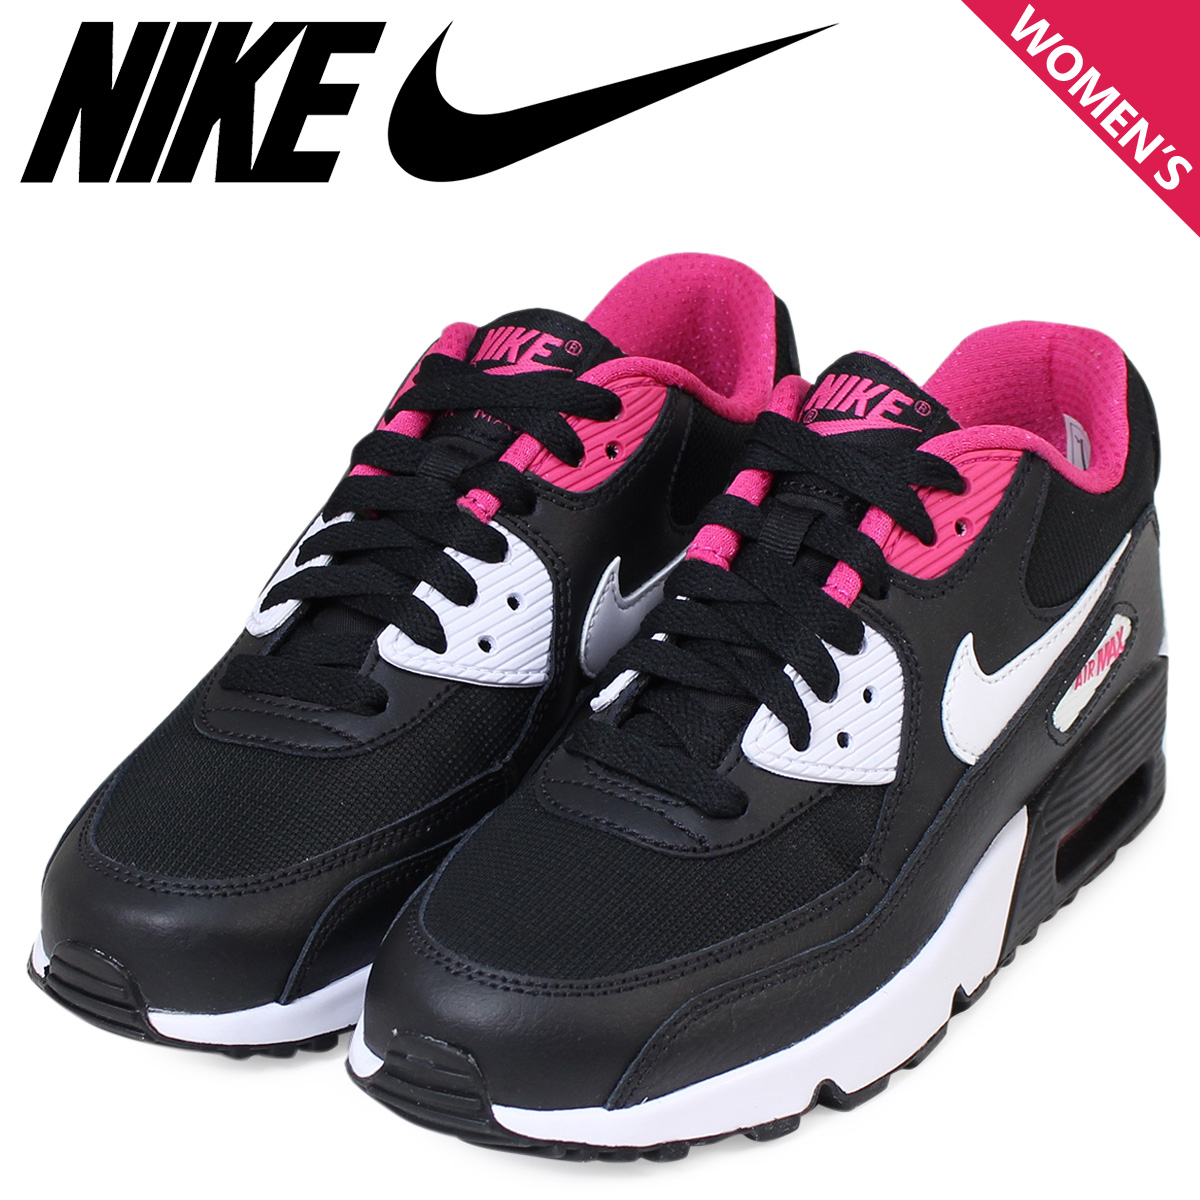 NIKE Air Max Lady's Nike sneakers AIR MAX 90 MESH GS Air Max 833,340 002 shoes black